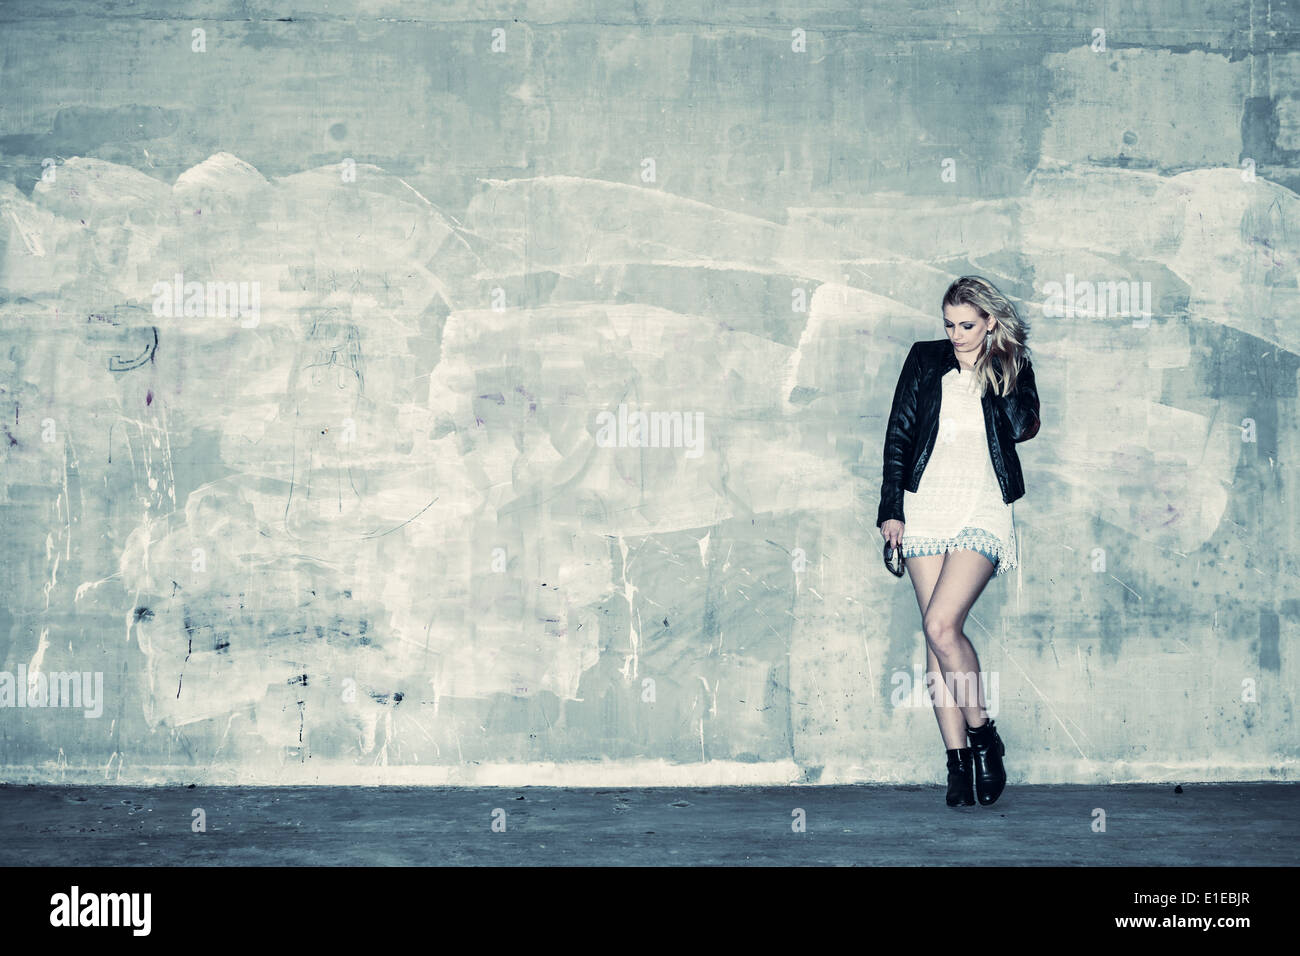 Beautiful urban girl leans against a concrete wall, cross processed image - Stock Image